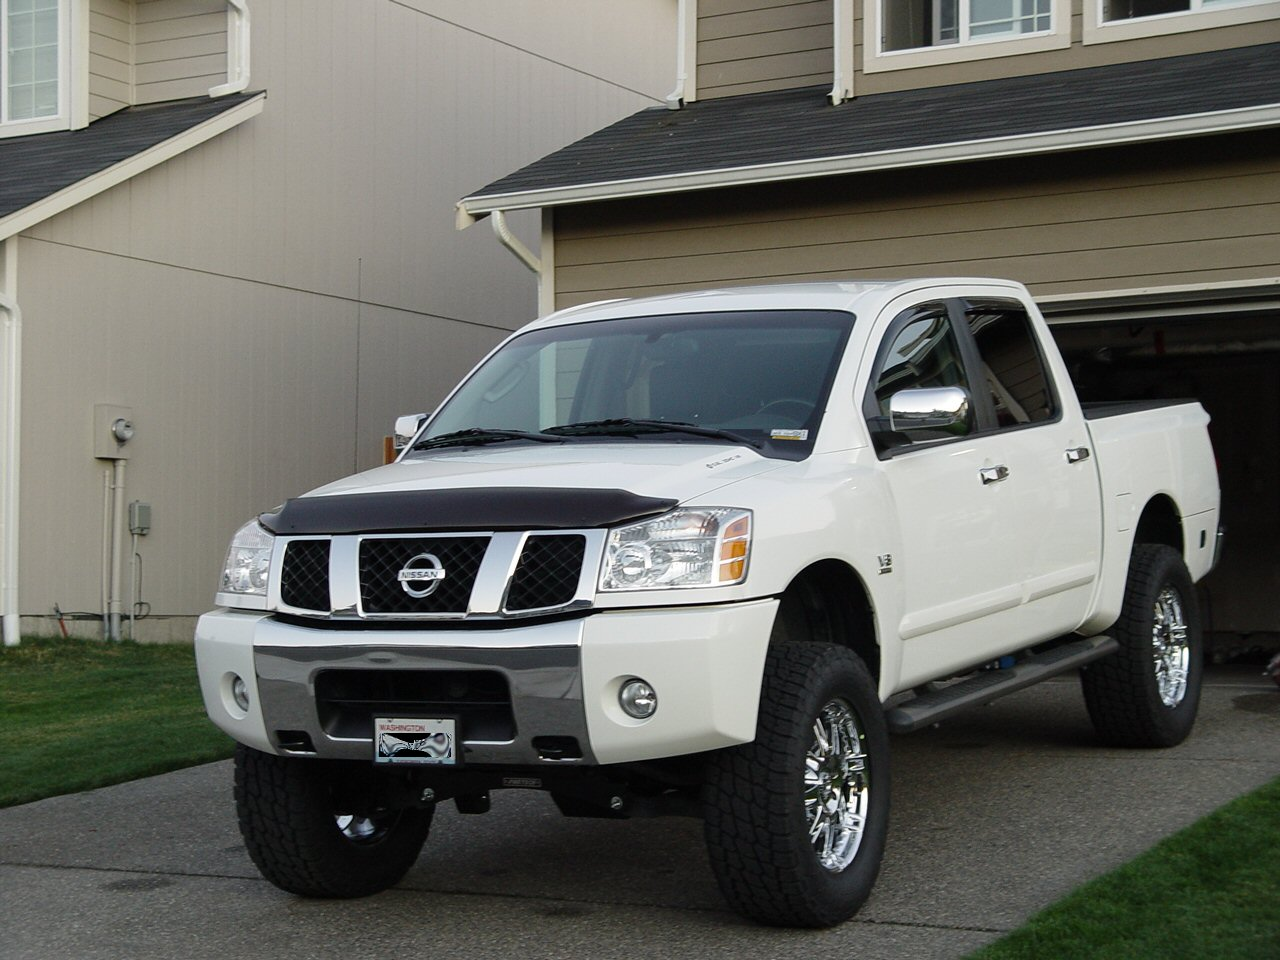 2004 nissan titan information and photos momentcar. Black Bedroom Furniture Sets. Home Design Ideas